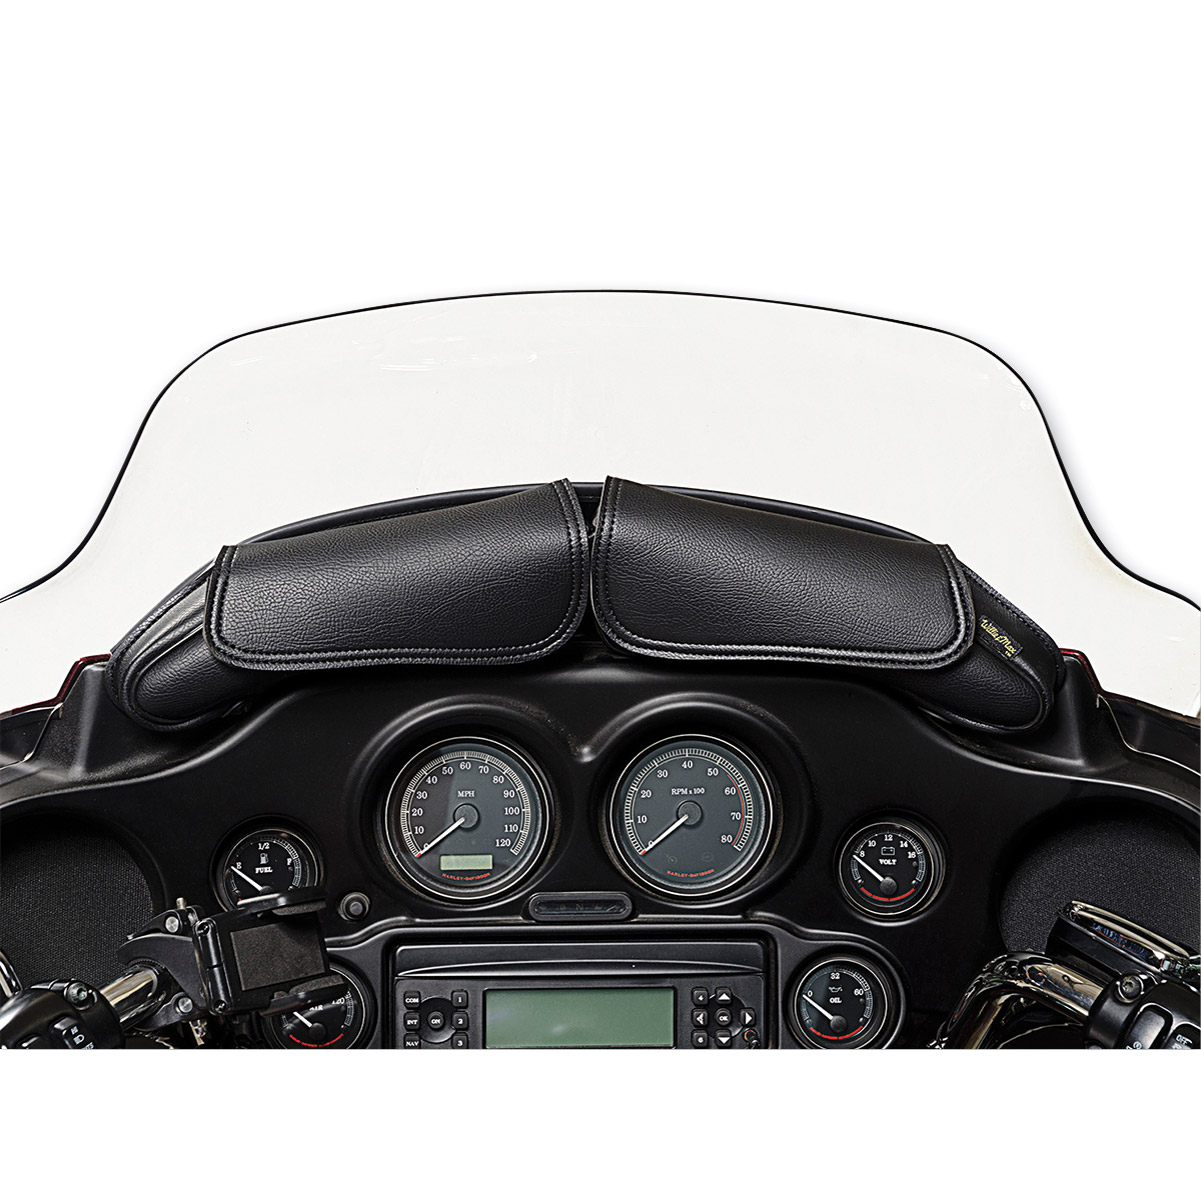 Willie Max Two Pocket Windshield Bag 04725